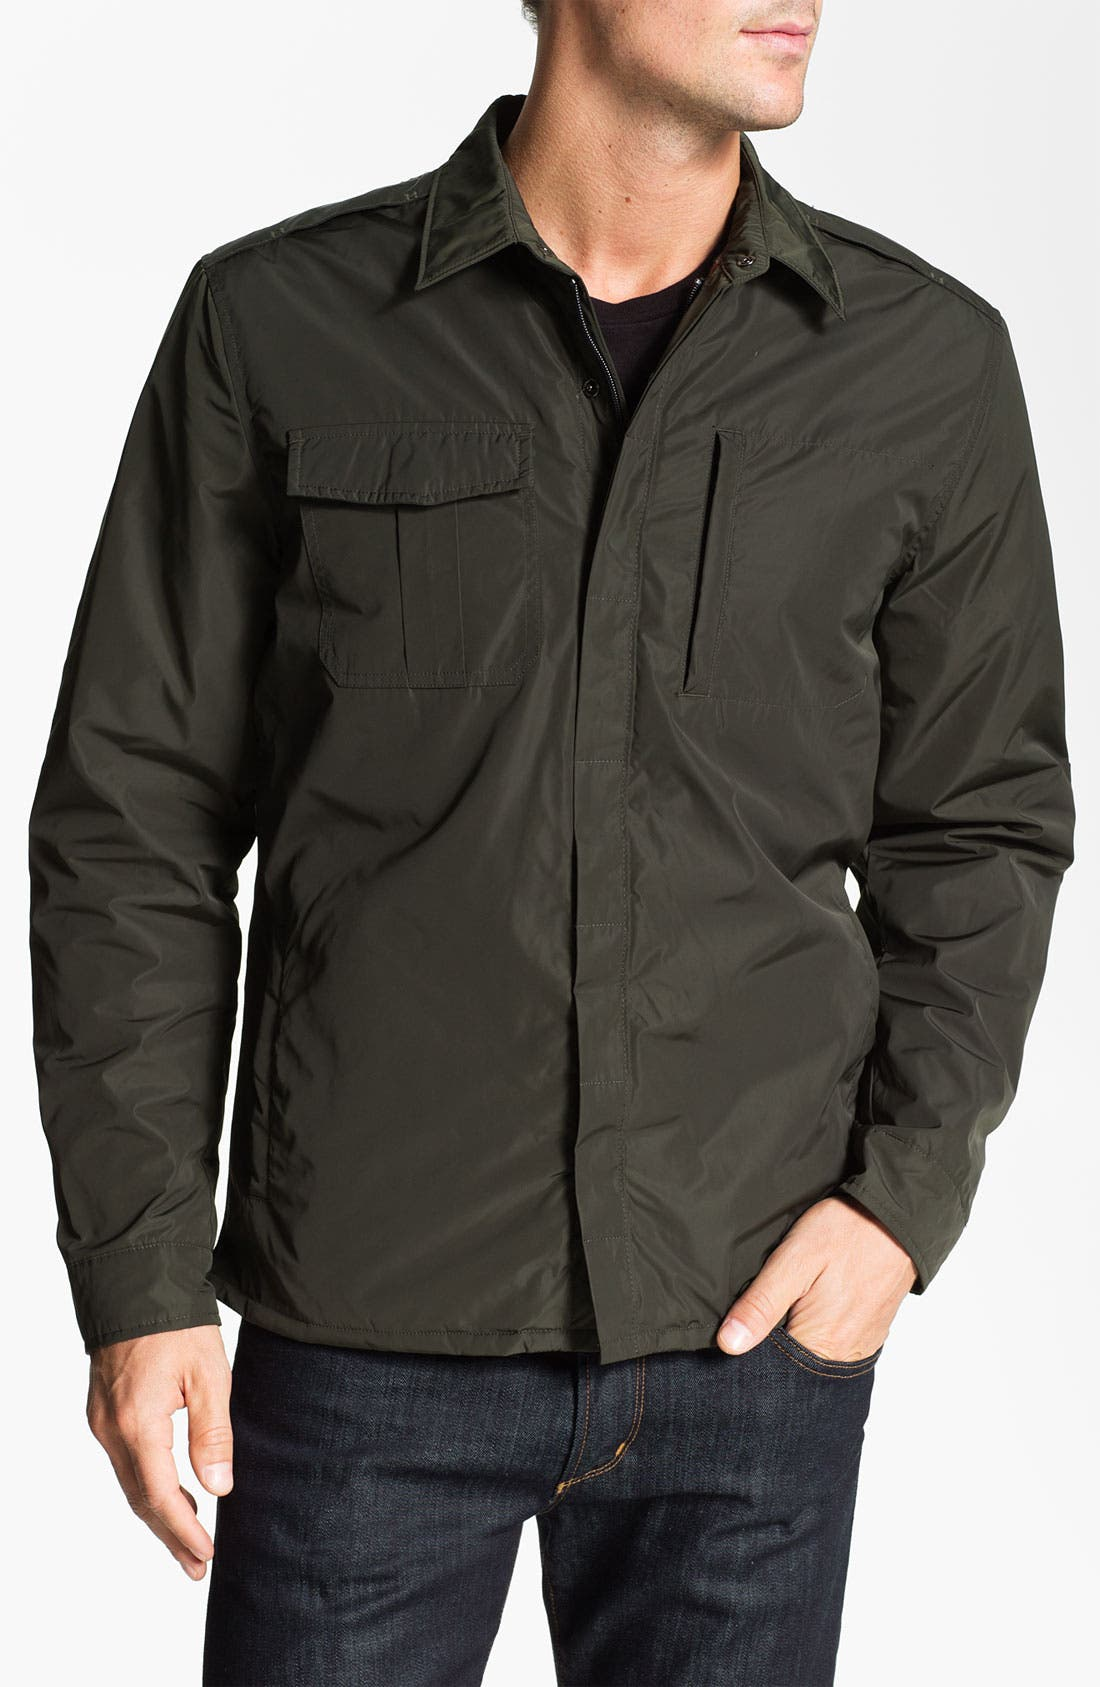 Alternate Image 1 Selected - Victorinox Swiss Army® 'Halster' Insulated Jacket (Online Exclusive)